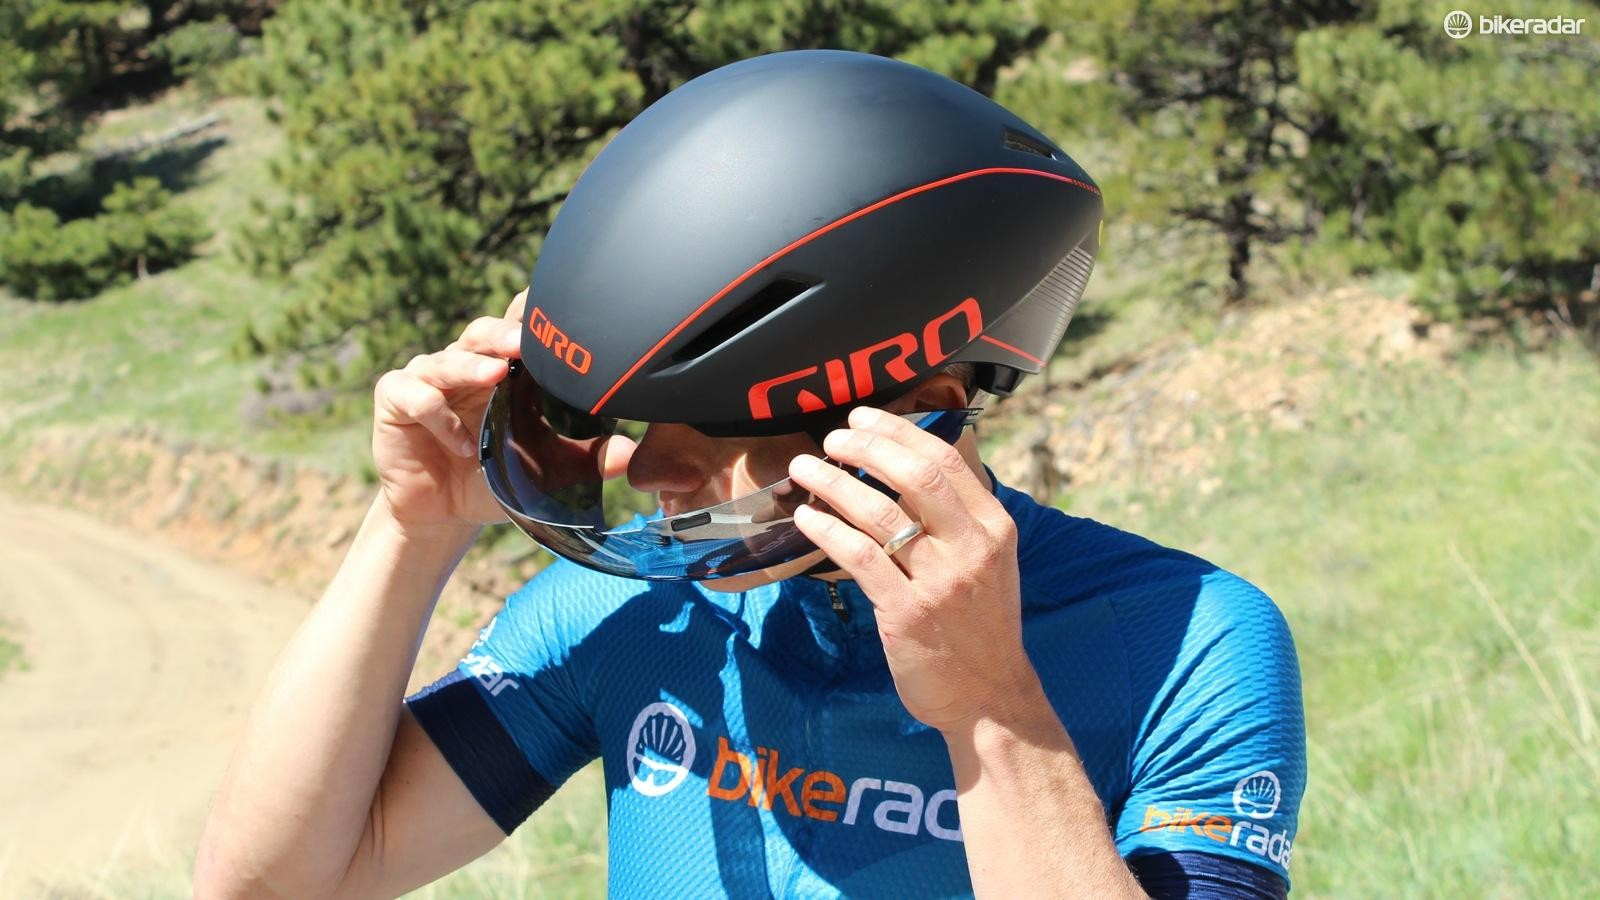 The Zeiss shield pops off for easy on/off of the helmet